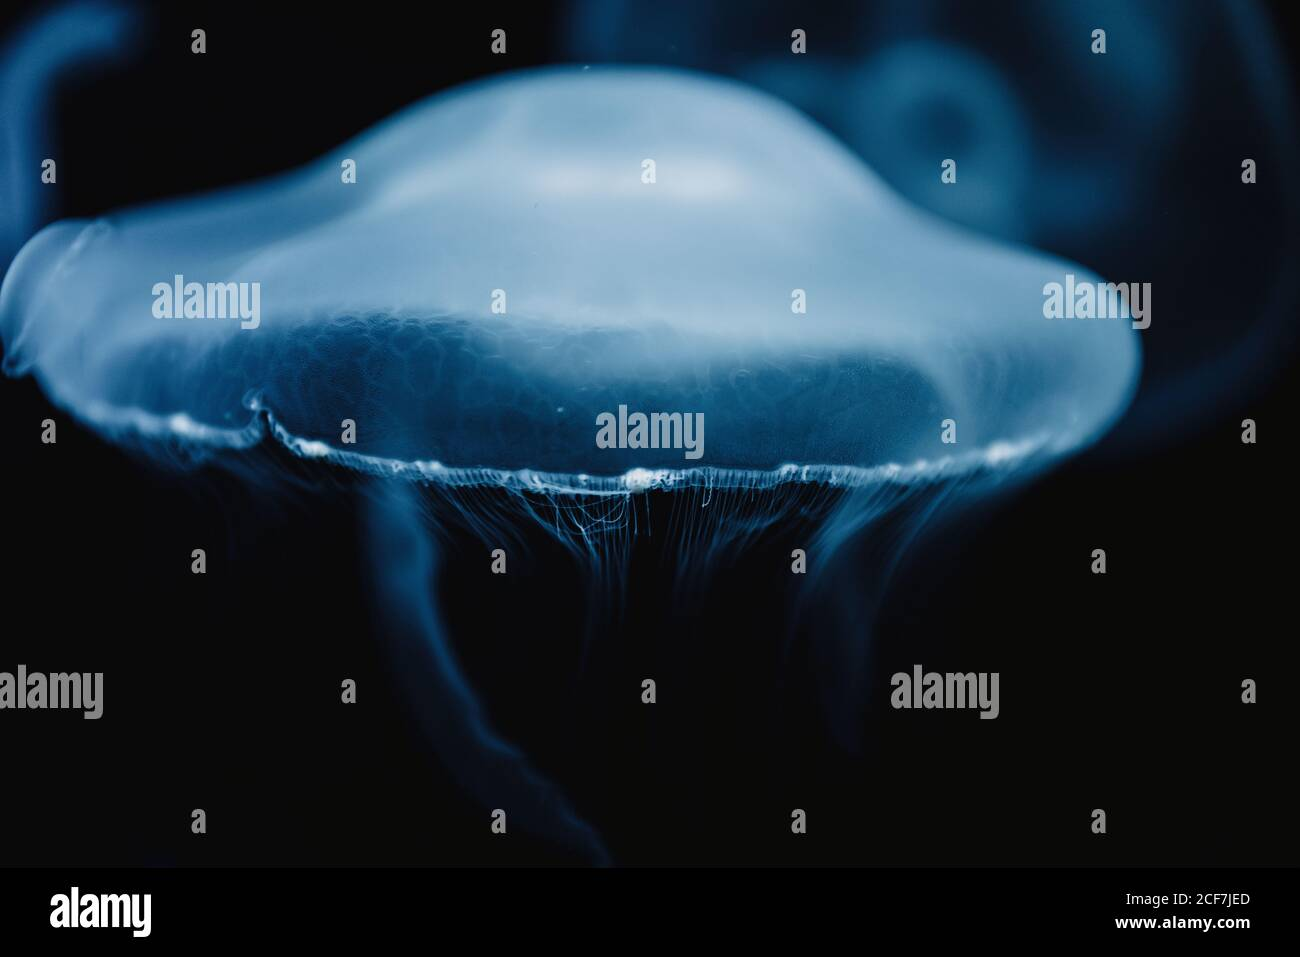 Tranquil transparent blue jellyfish under sea turquoise water on blurred background Stock Photo